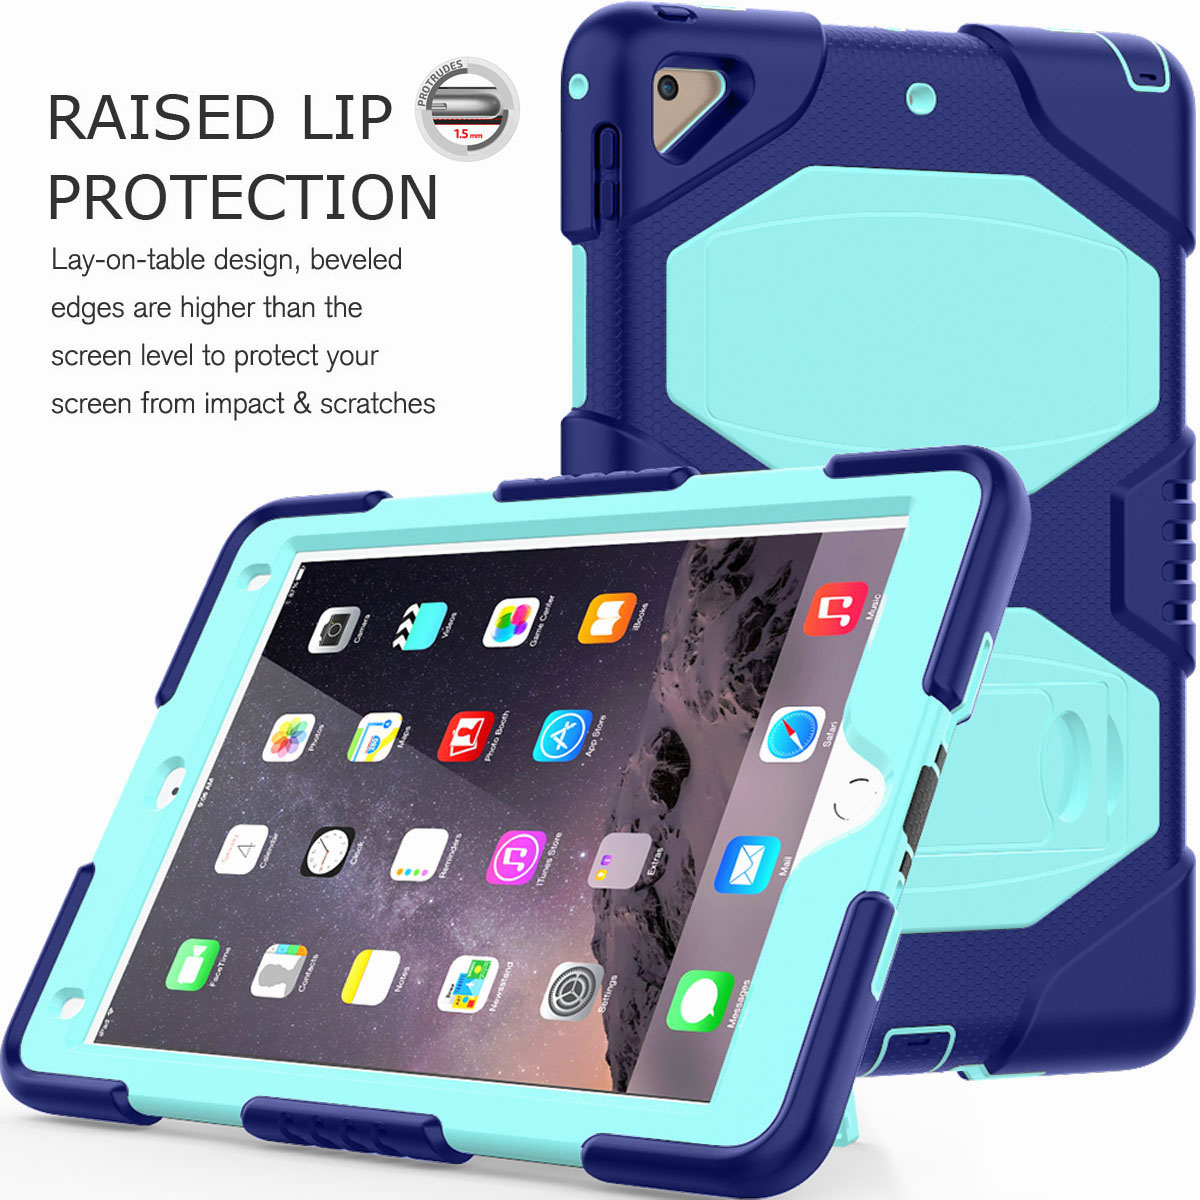 Hybrid-Rubber-Heavy-Duty-Shockproof-Case-Cover-For-iPad-9-7-6th-Generation-2018 thumbnail 87